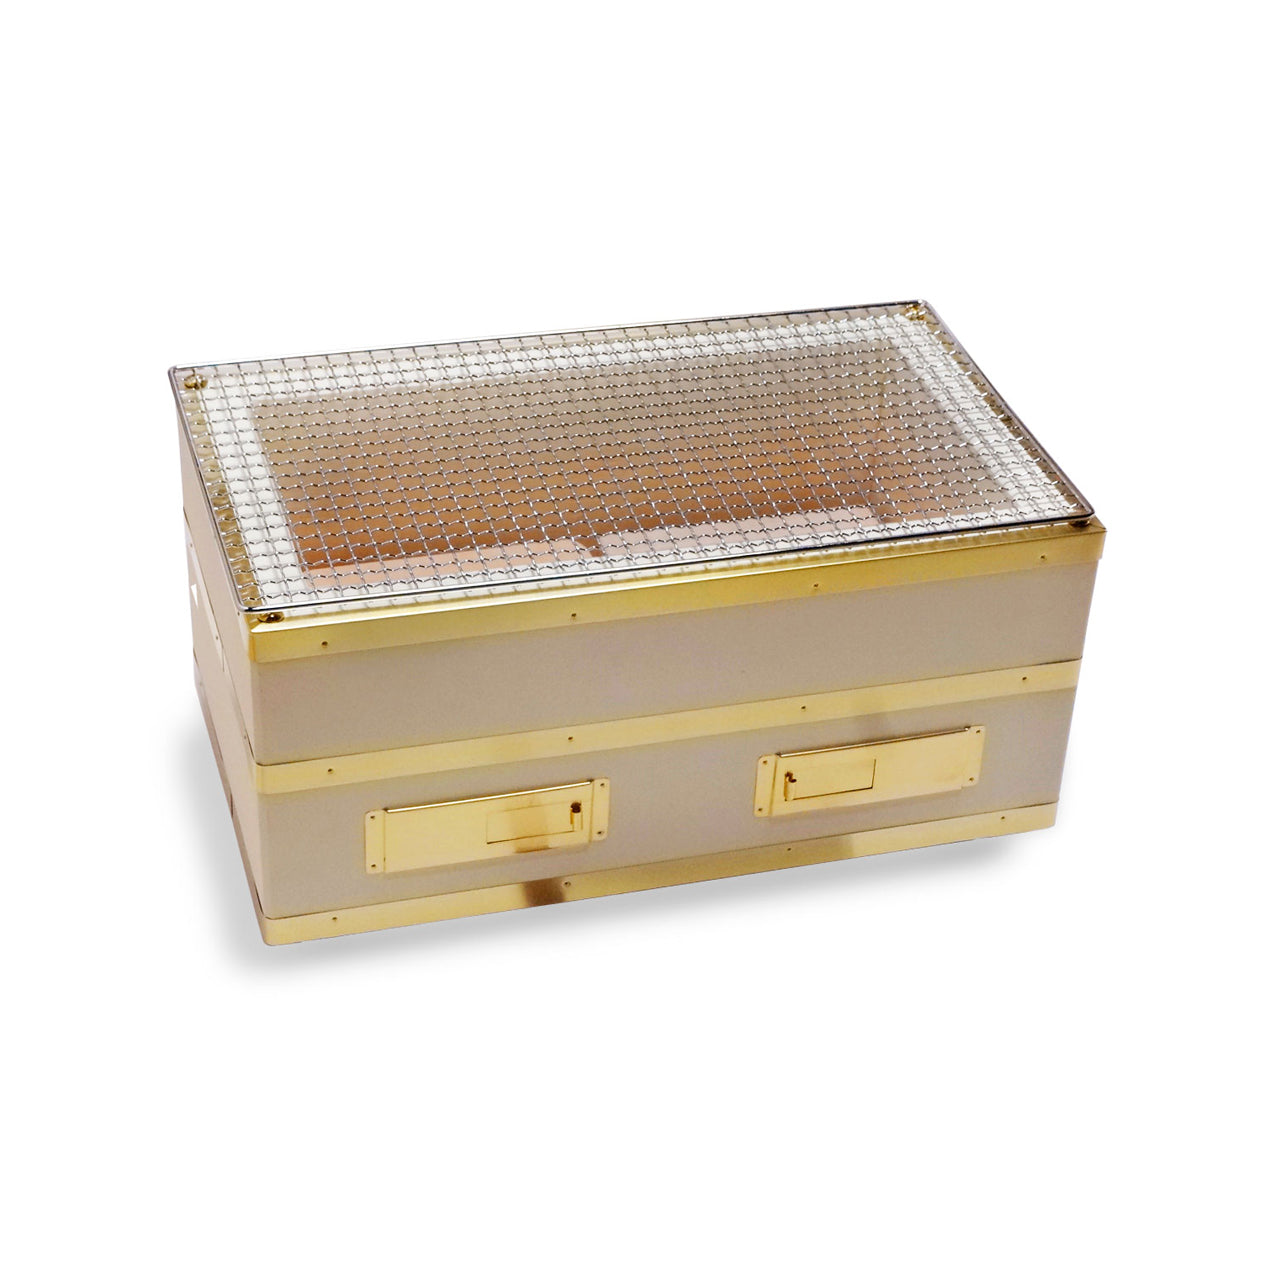 "Charcoal Konro Grill with Brass & Net Medium 18"" x 10"" (SKU: 98781)"